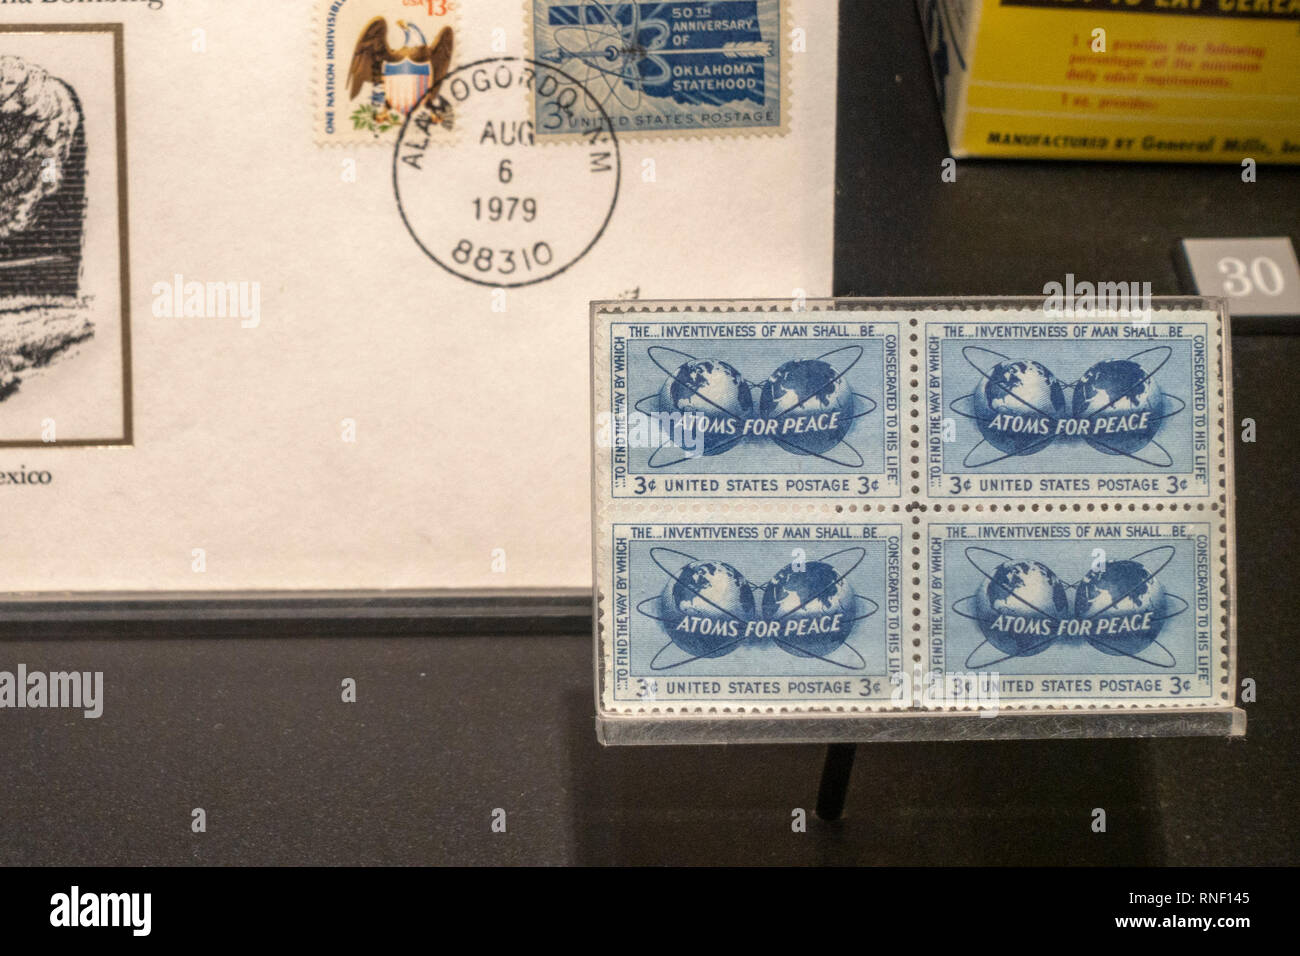 3 cent 'Atoms for Peace' stamps from 1955, Nevada, United States. - Stock Image